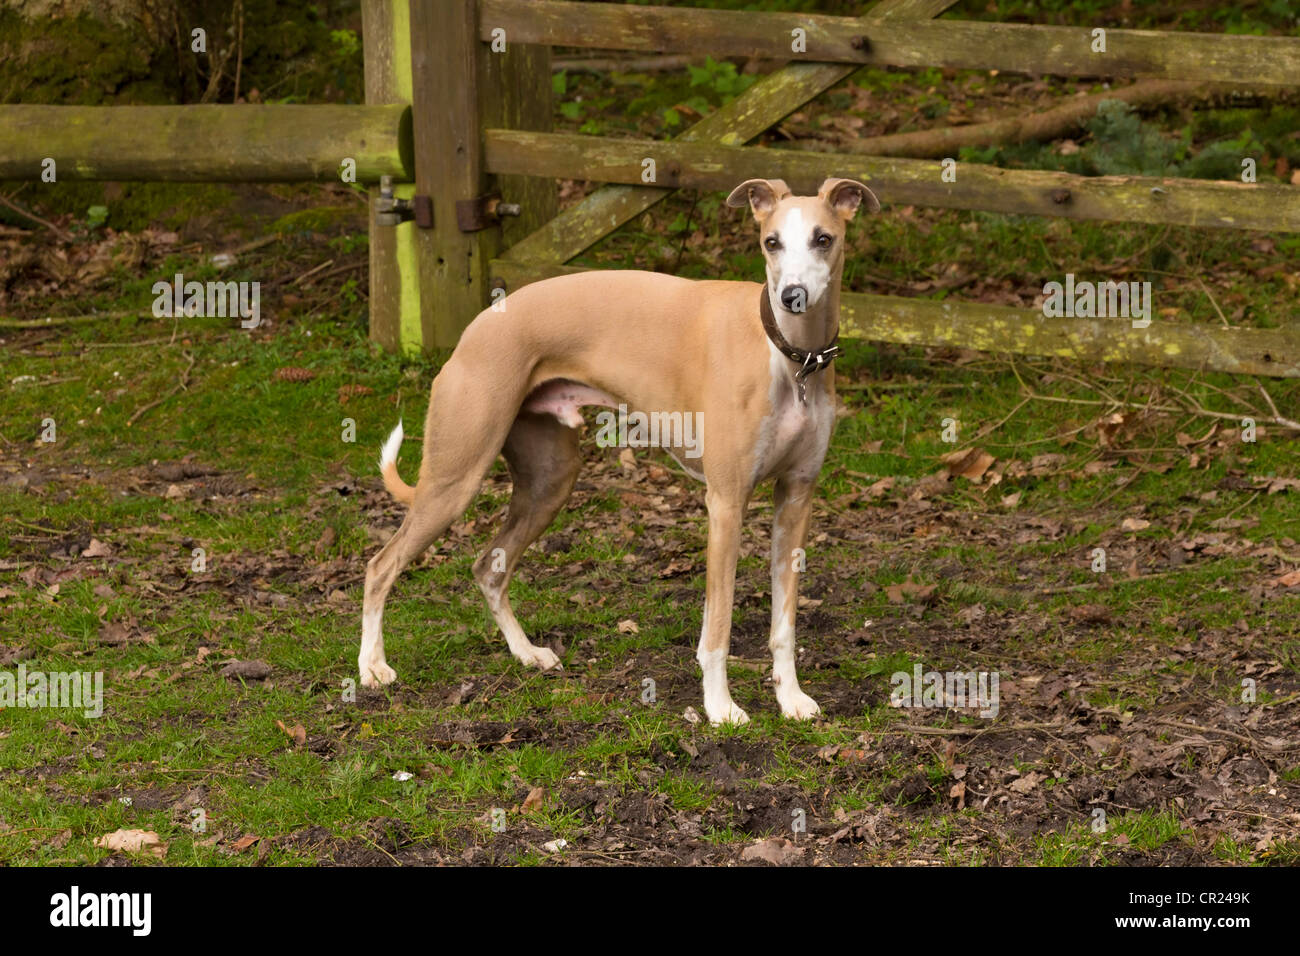 Whippet (Canis lupus familiaris) in rural scene Stock Photo